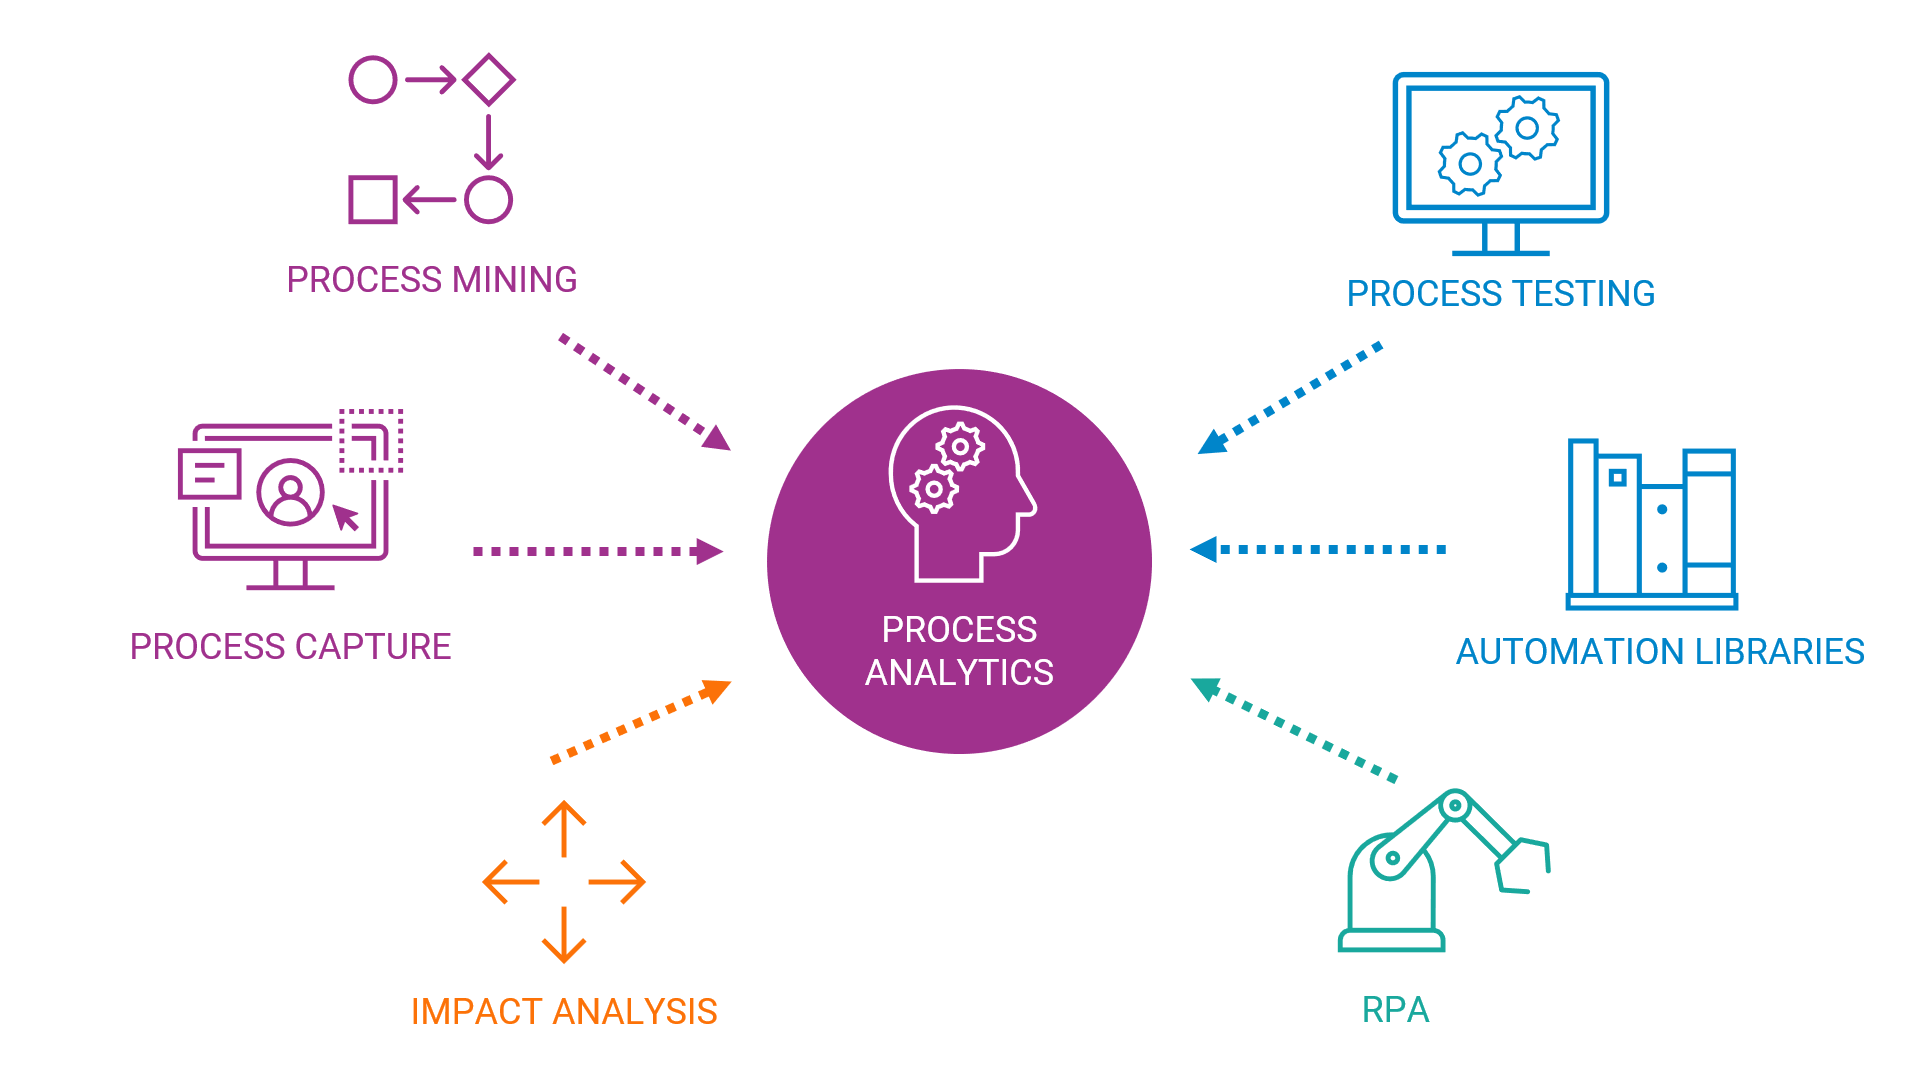 Process Mining - Process Capture - Impact Analysis - RPA - Automation Libraries - Process Testing